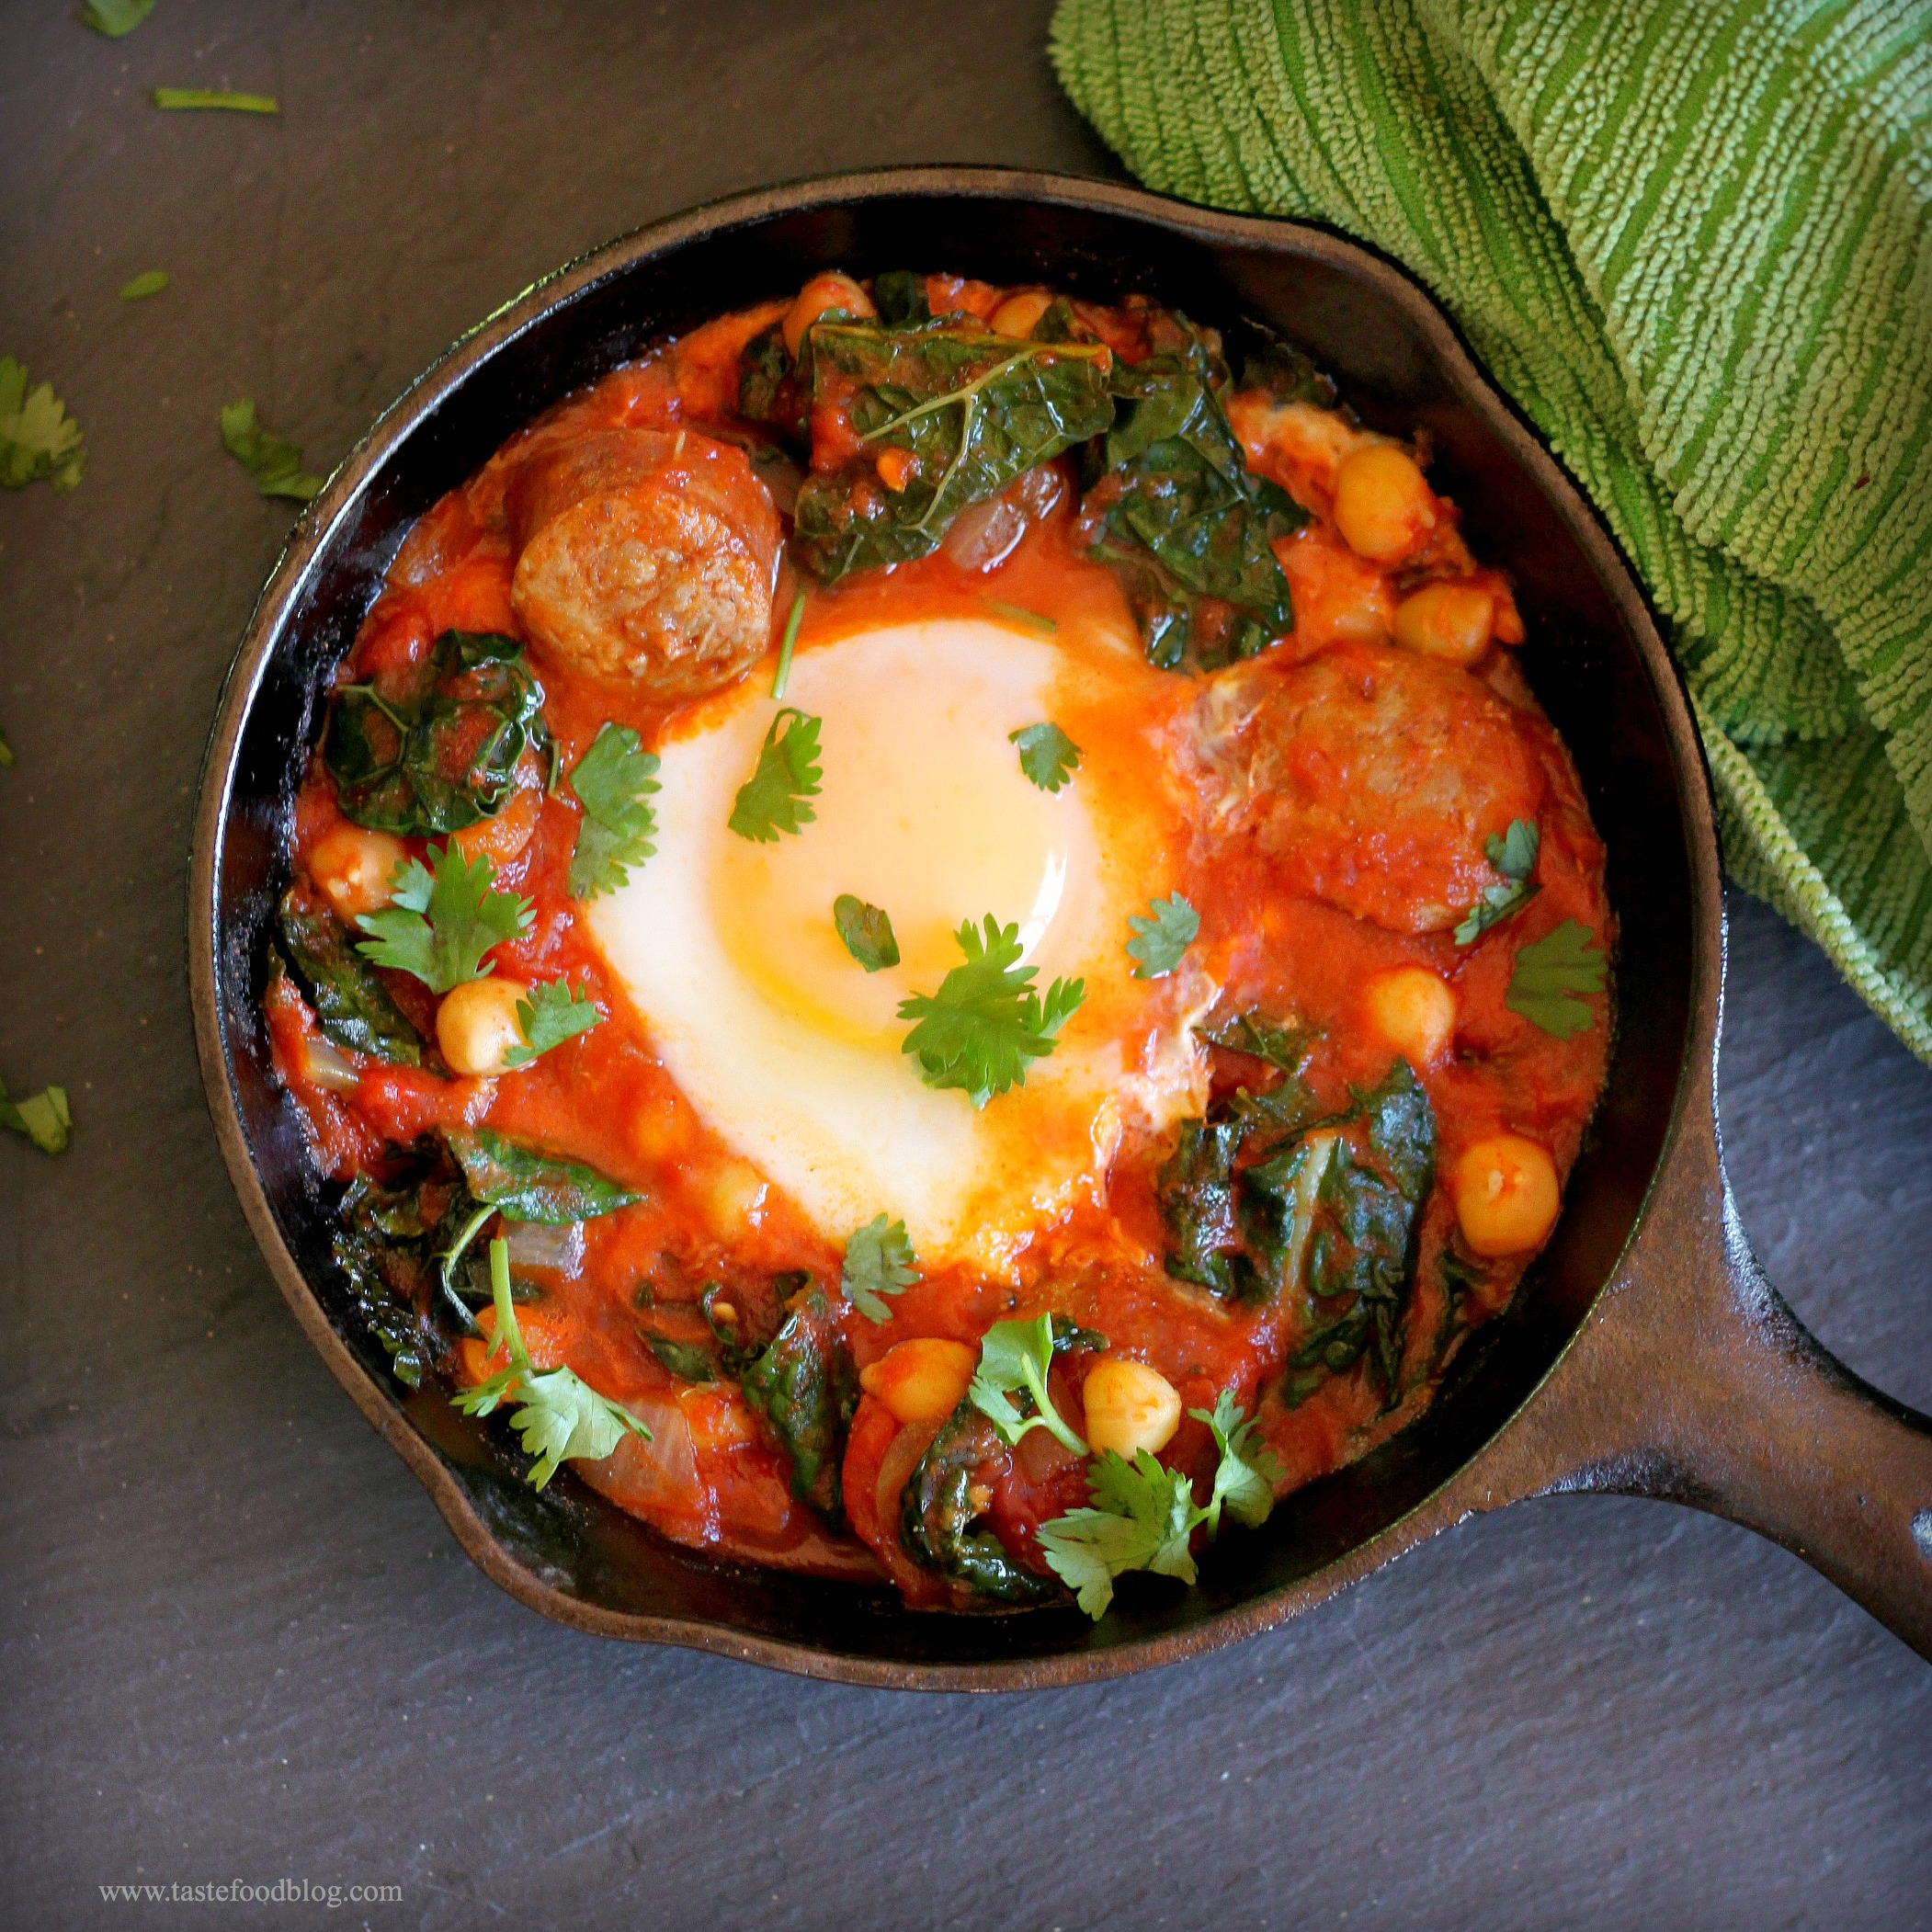 Kale With Chorizo And Poached Eggs Recipes — Dishmaps